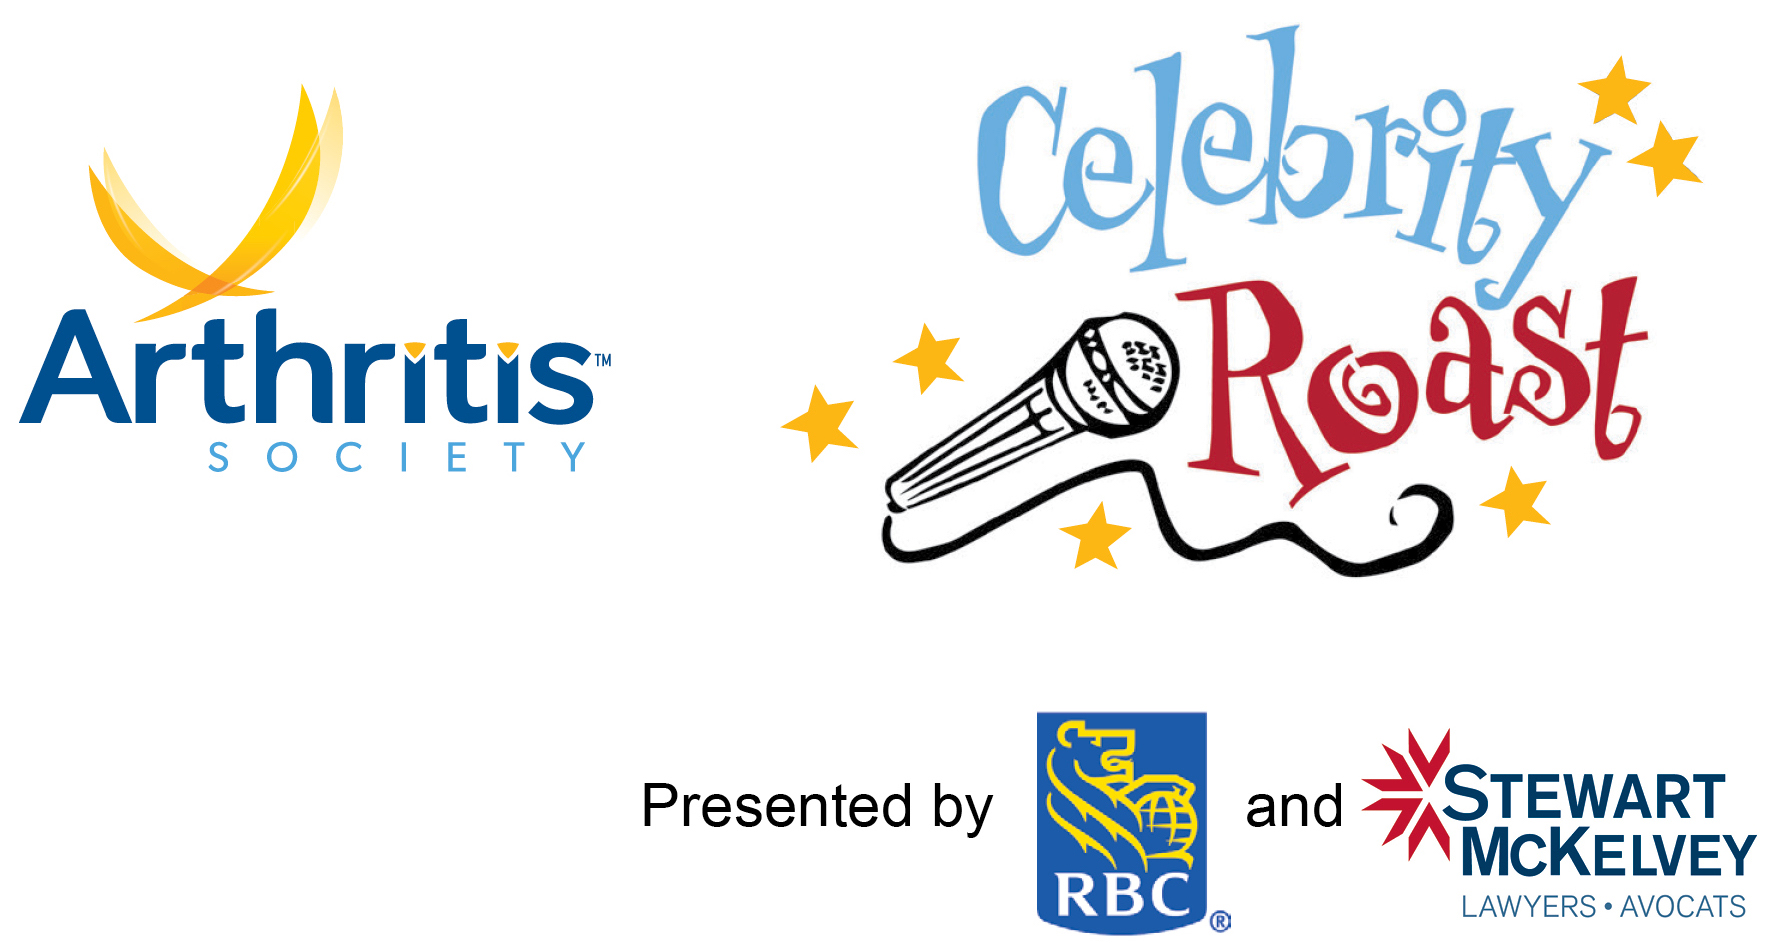 Image of the logo of The Arthritis Society, logo of the Celebrity Roast - presented by RBC and Stewart McKelvey (Lawyers - Advocats)